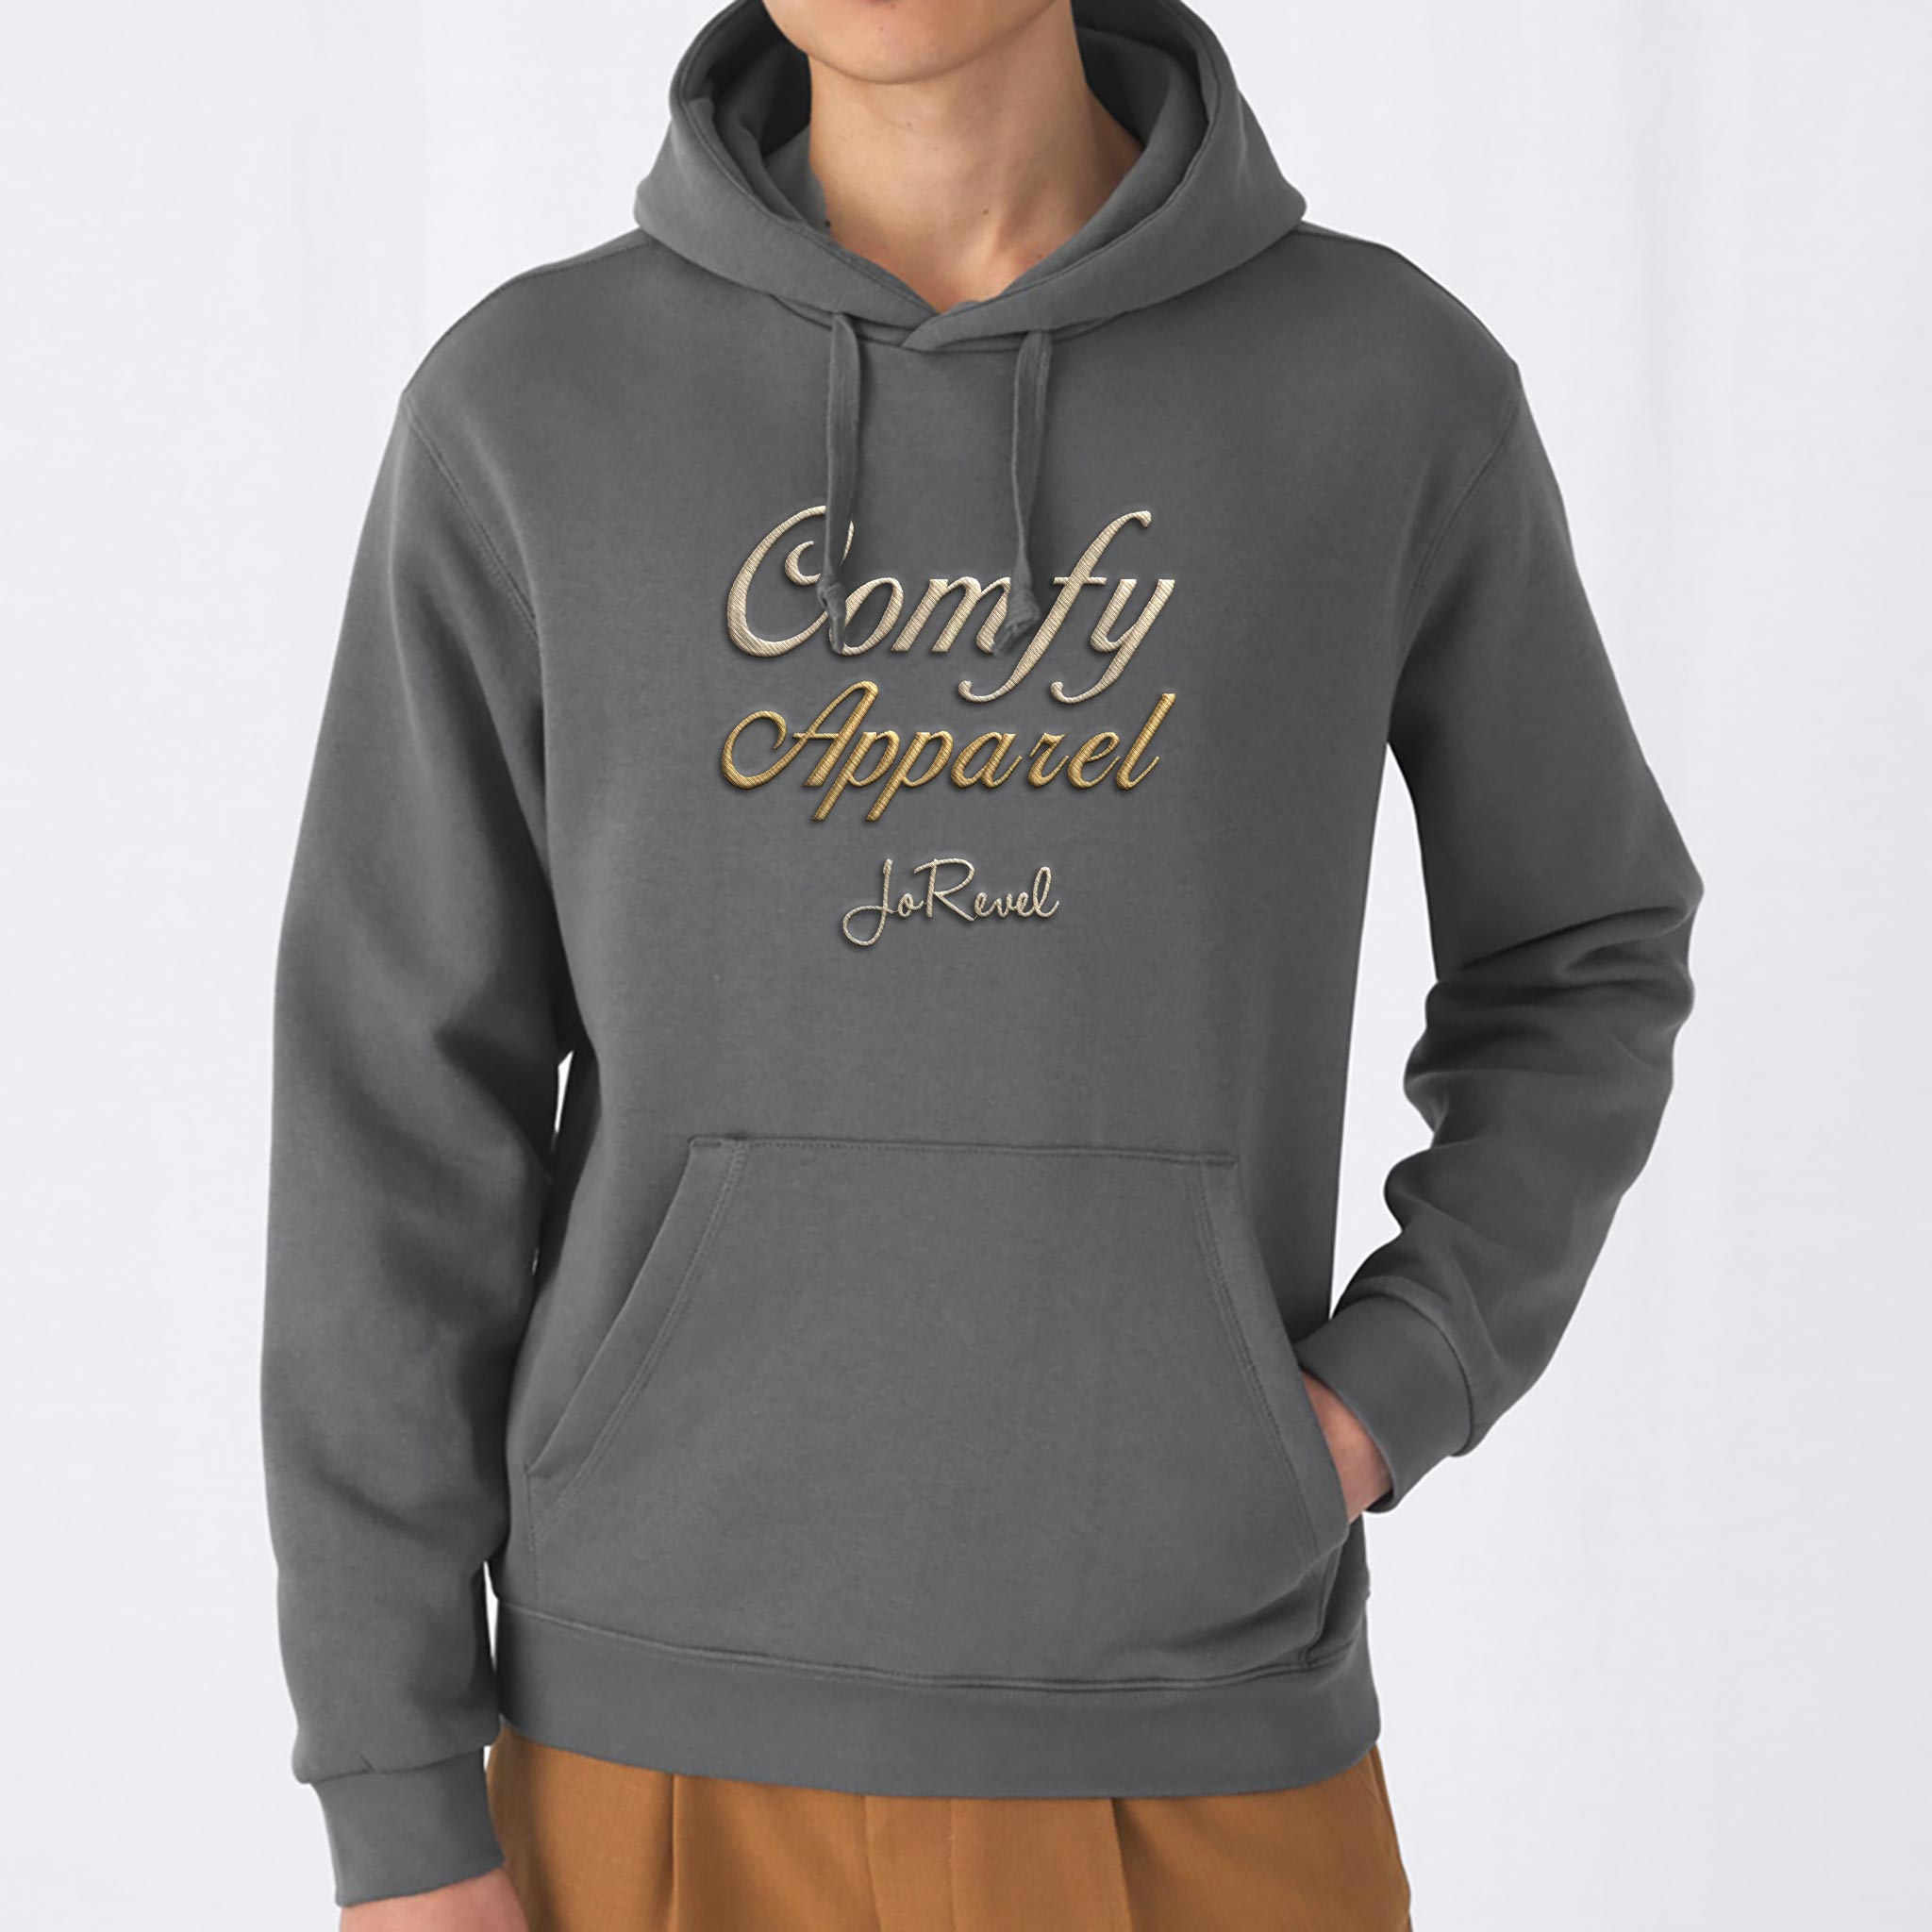 Embrodert Hodie Comfy Apparel Jorievel Embroidery